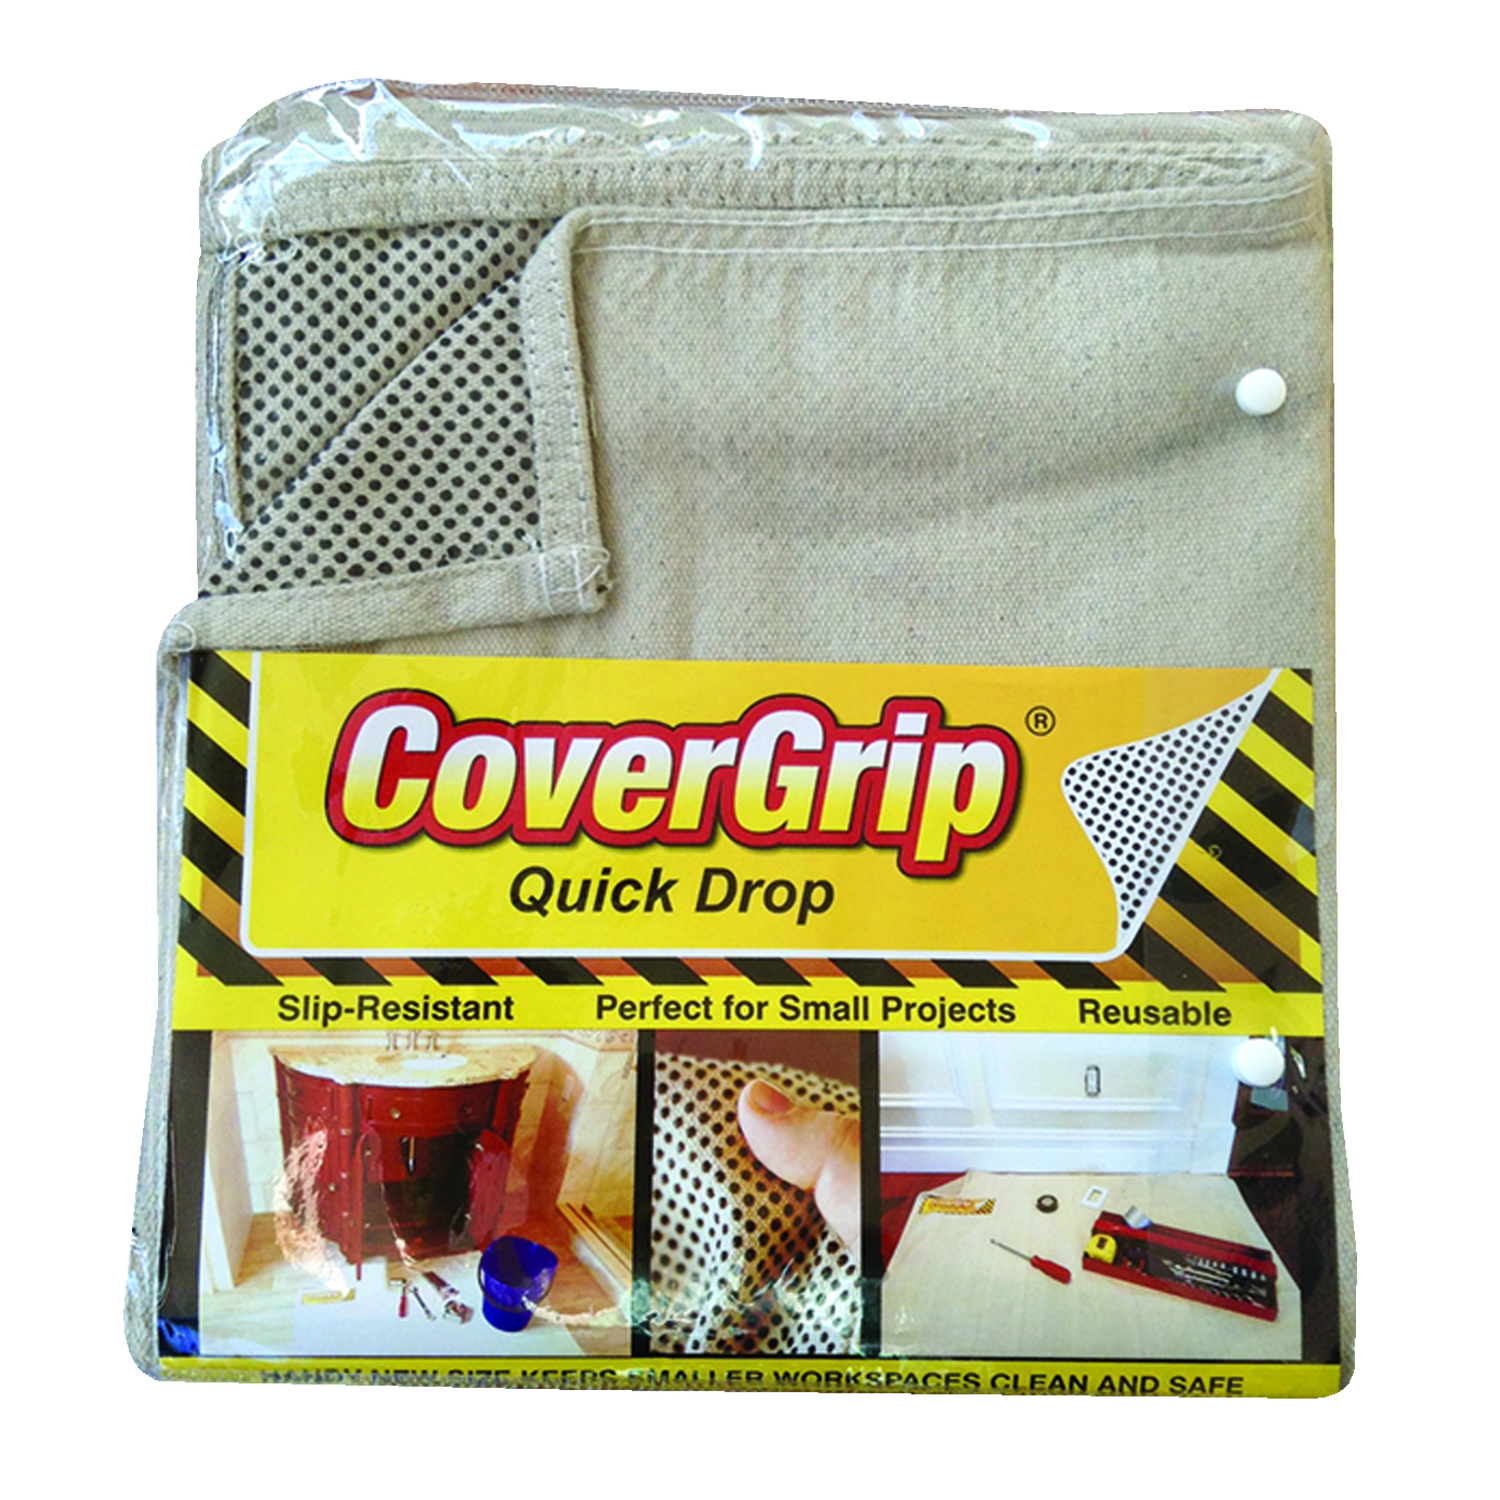 Covergrip  Light Weight  Canvas  Safety Drop Cloth  3.5 ft. W x 4 ft. L